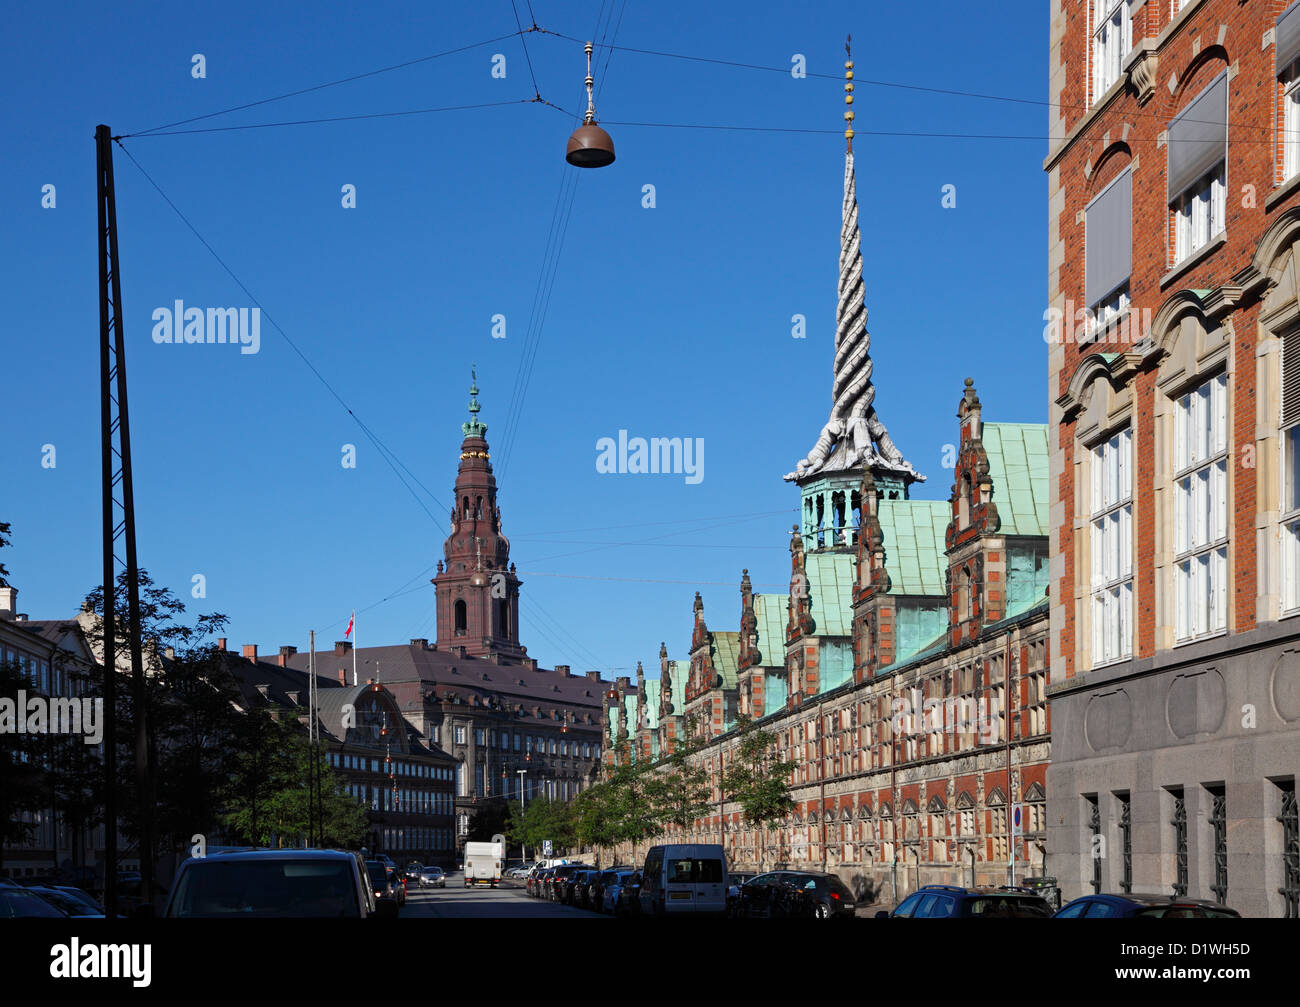 The old stock exchange, Børsen, in renaissance style and the tower of twisted dragon tails. Christiansborg - Stock Image